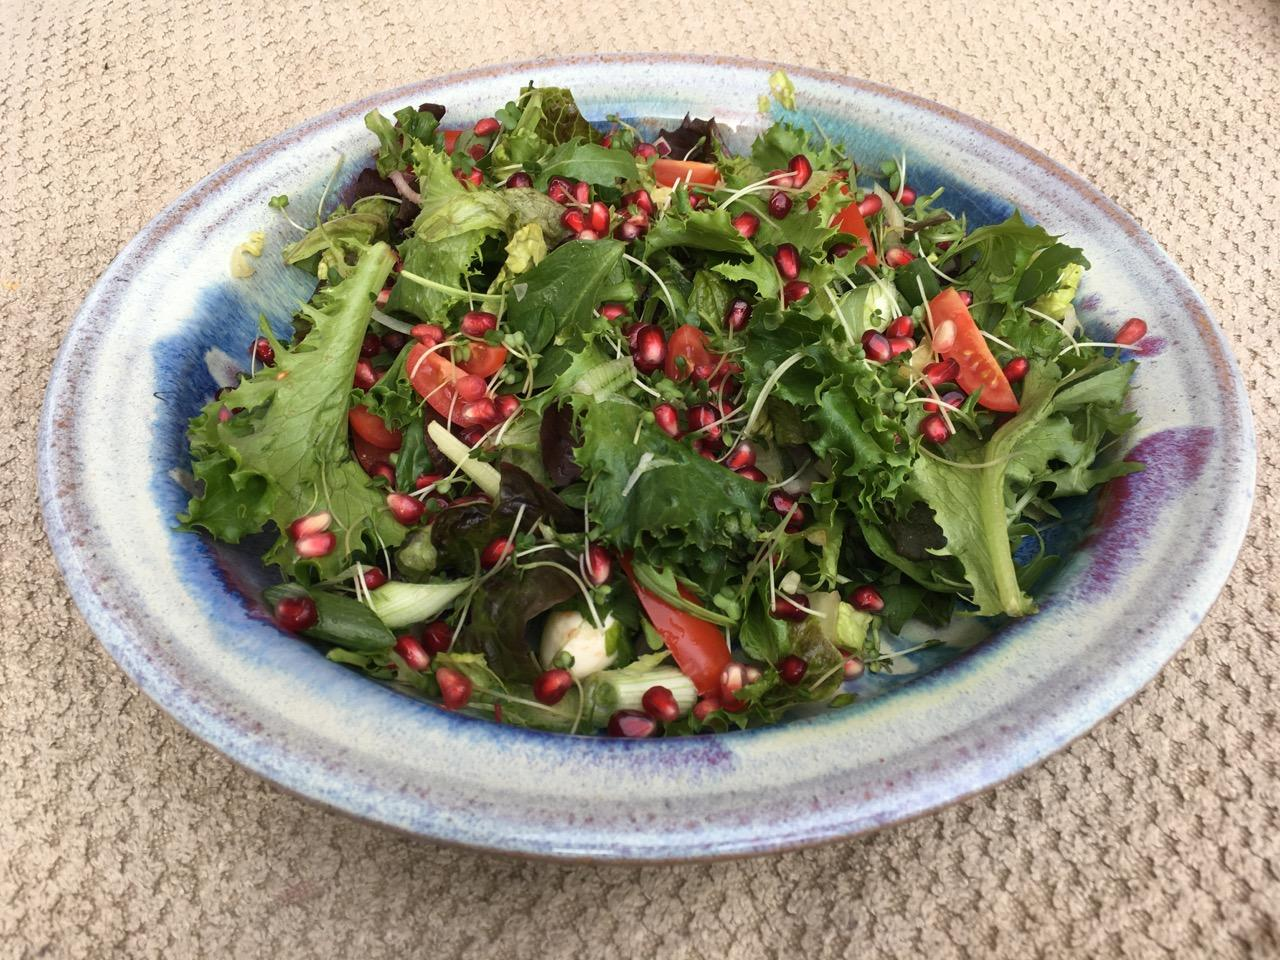 Large shallow bowl with a summer salad.